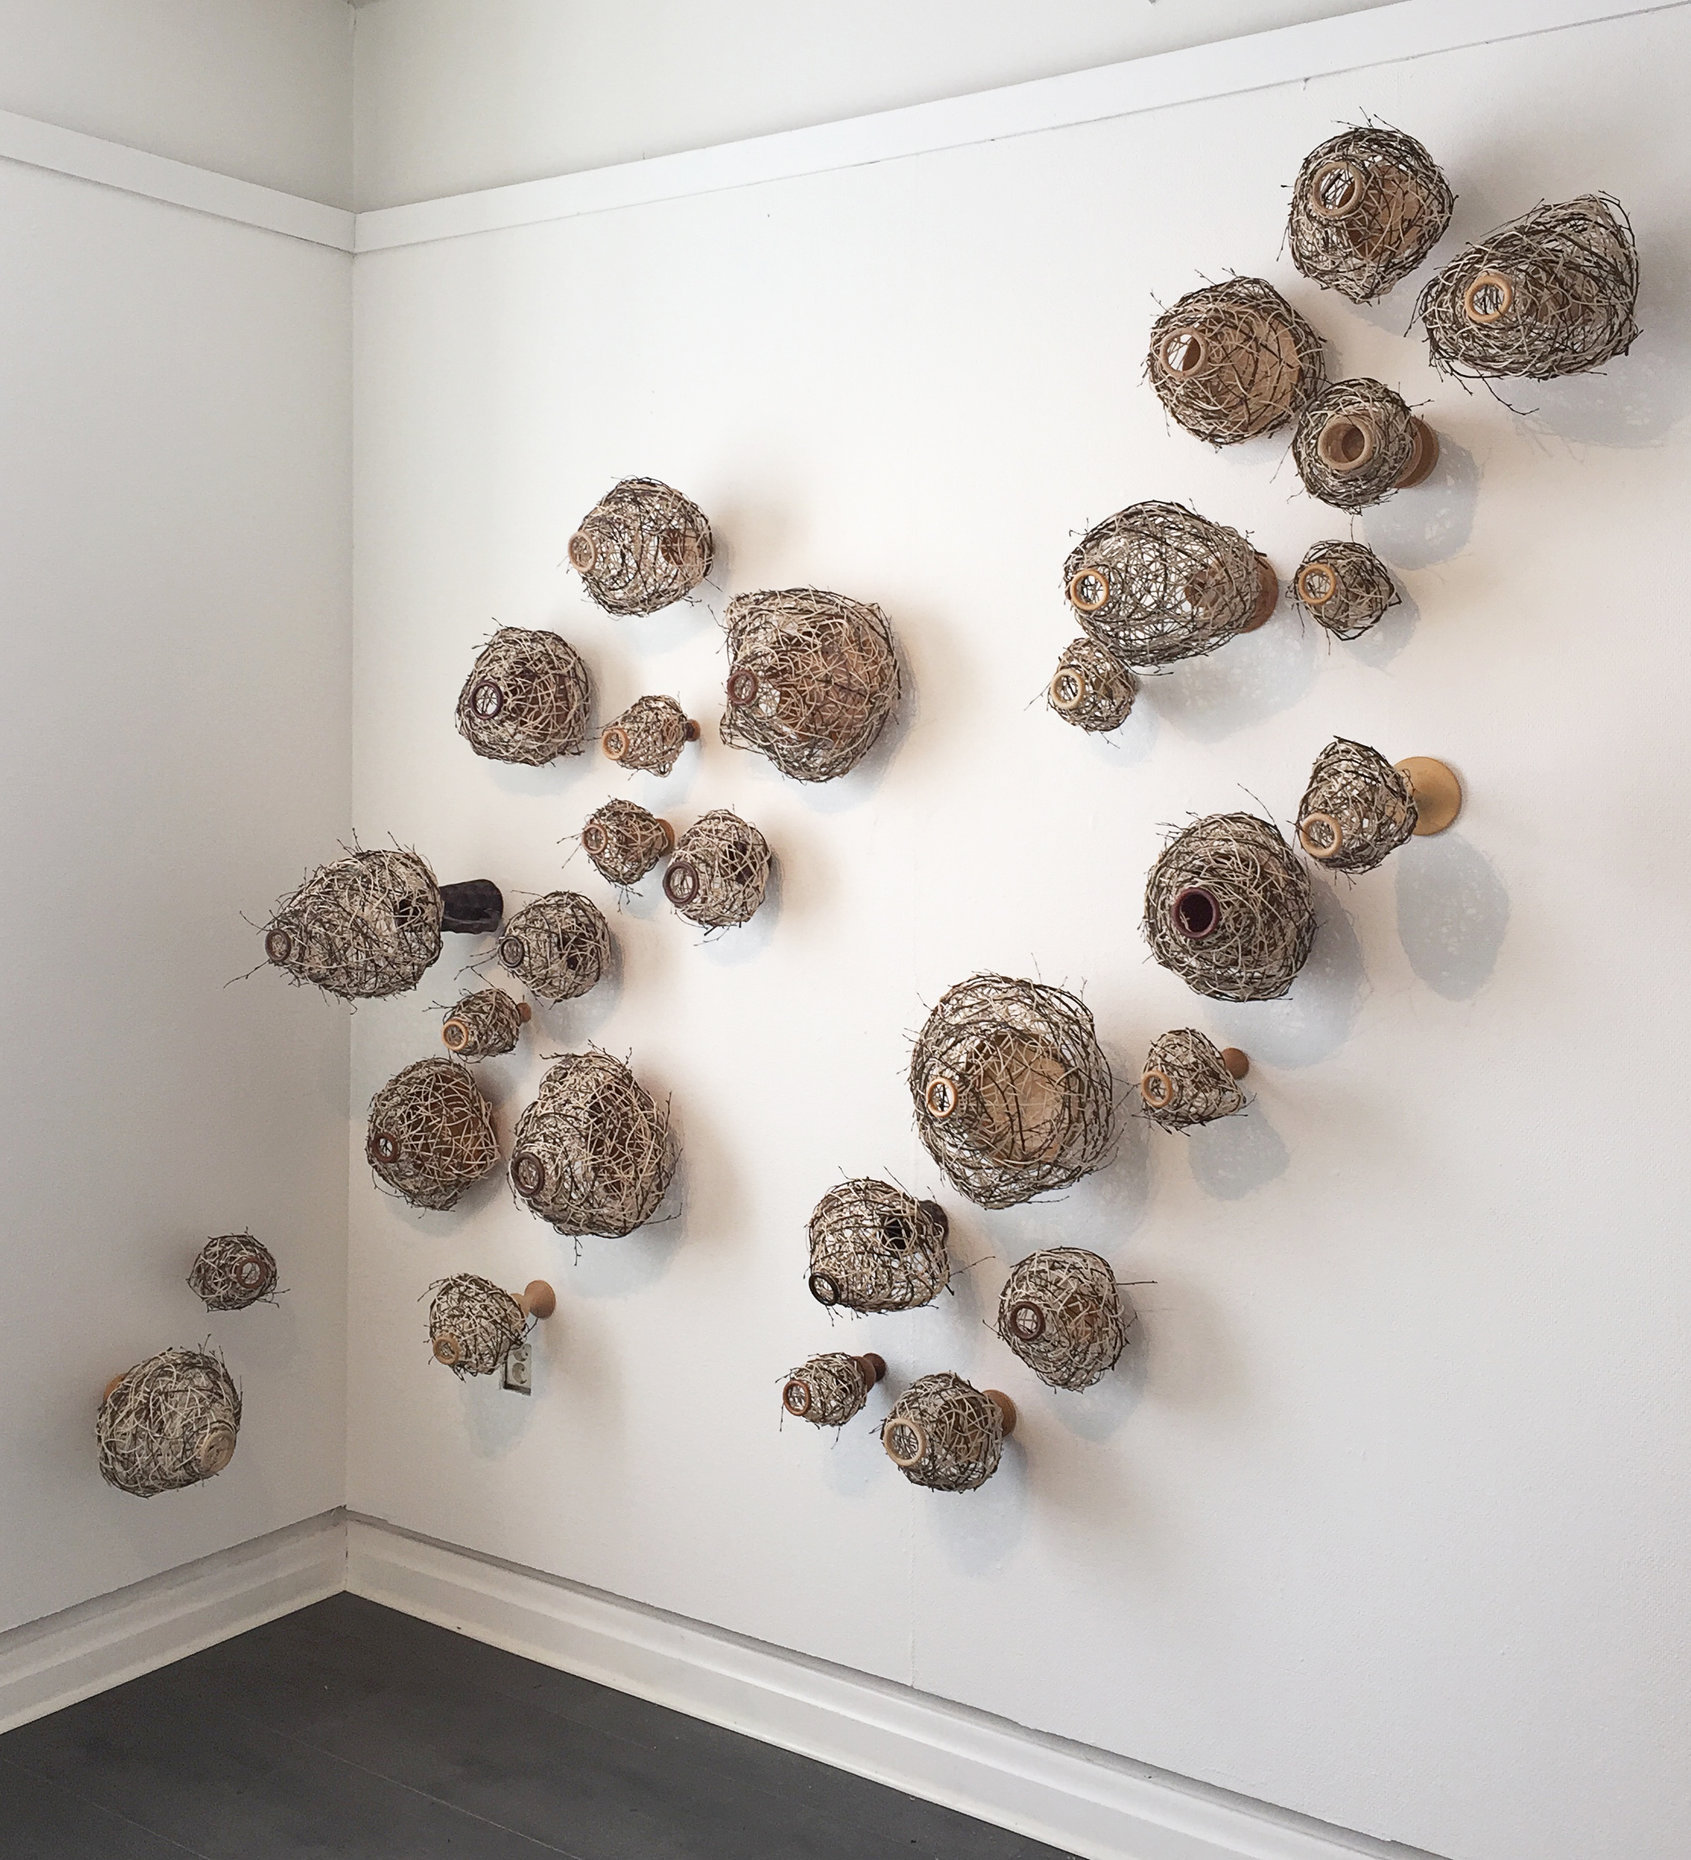 Installation made of wooden objects and rattan. 2015